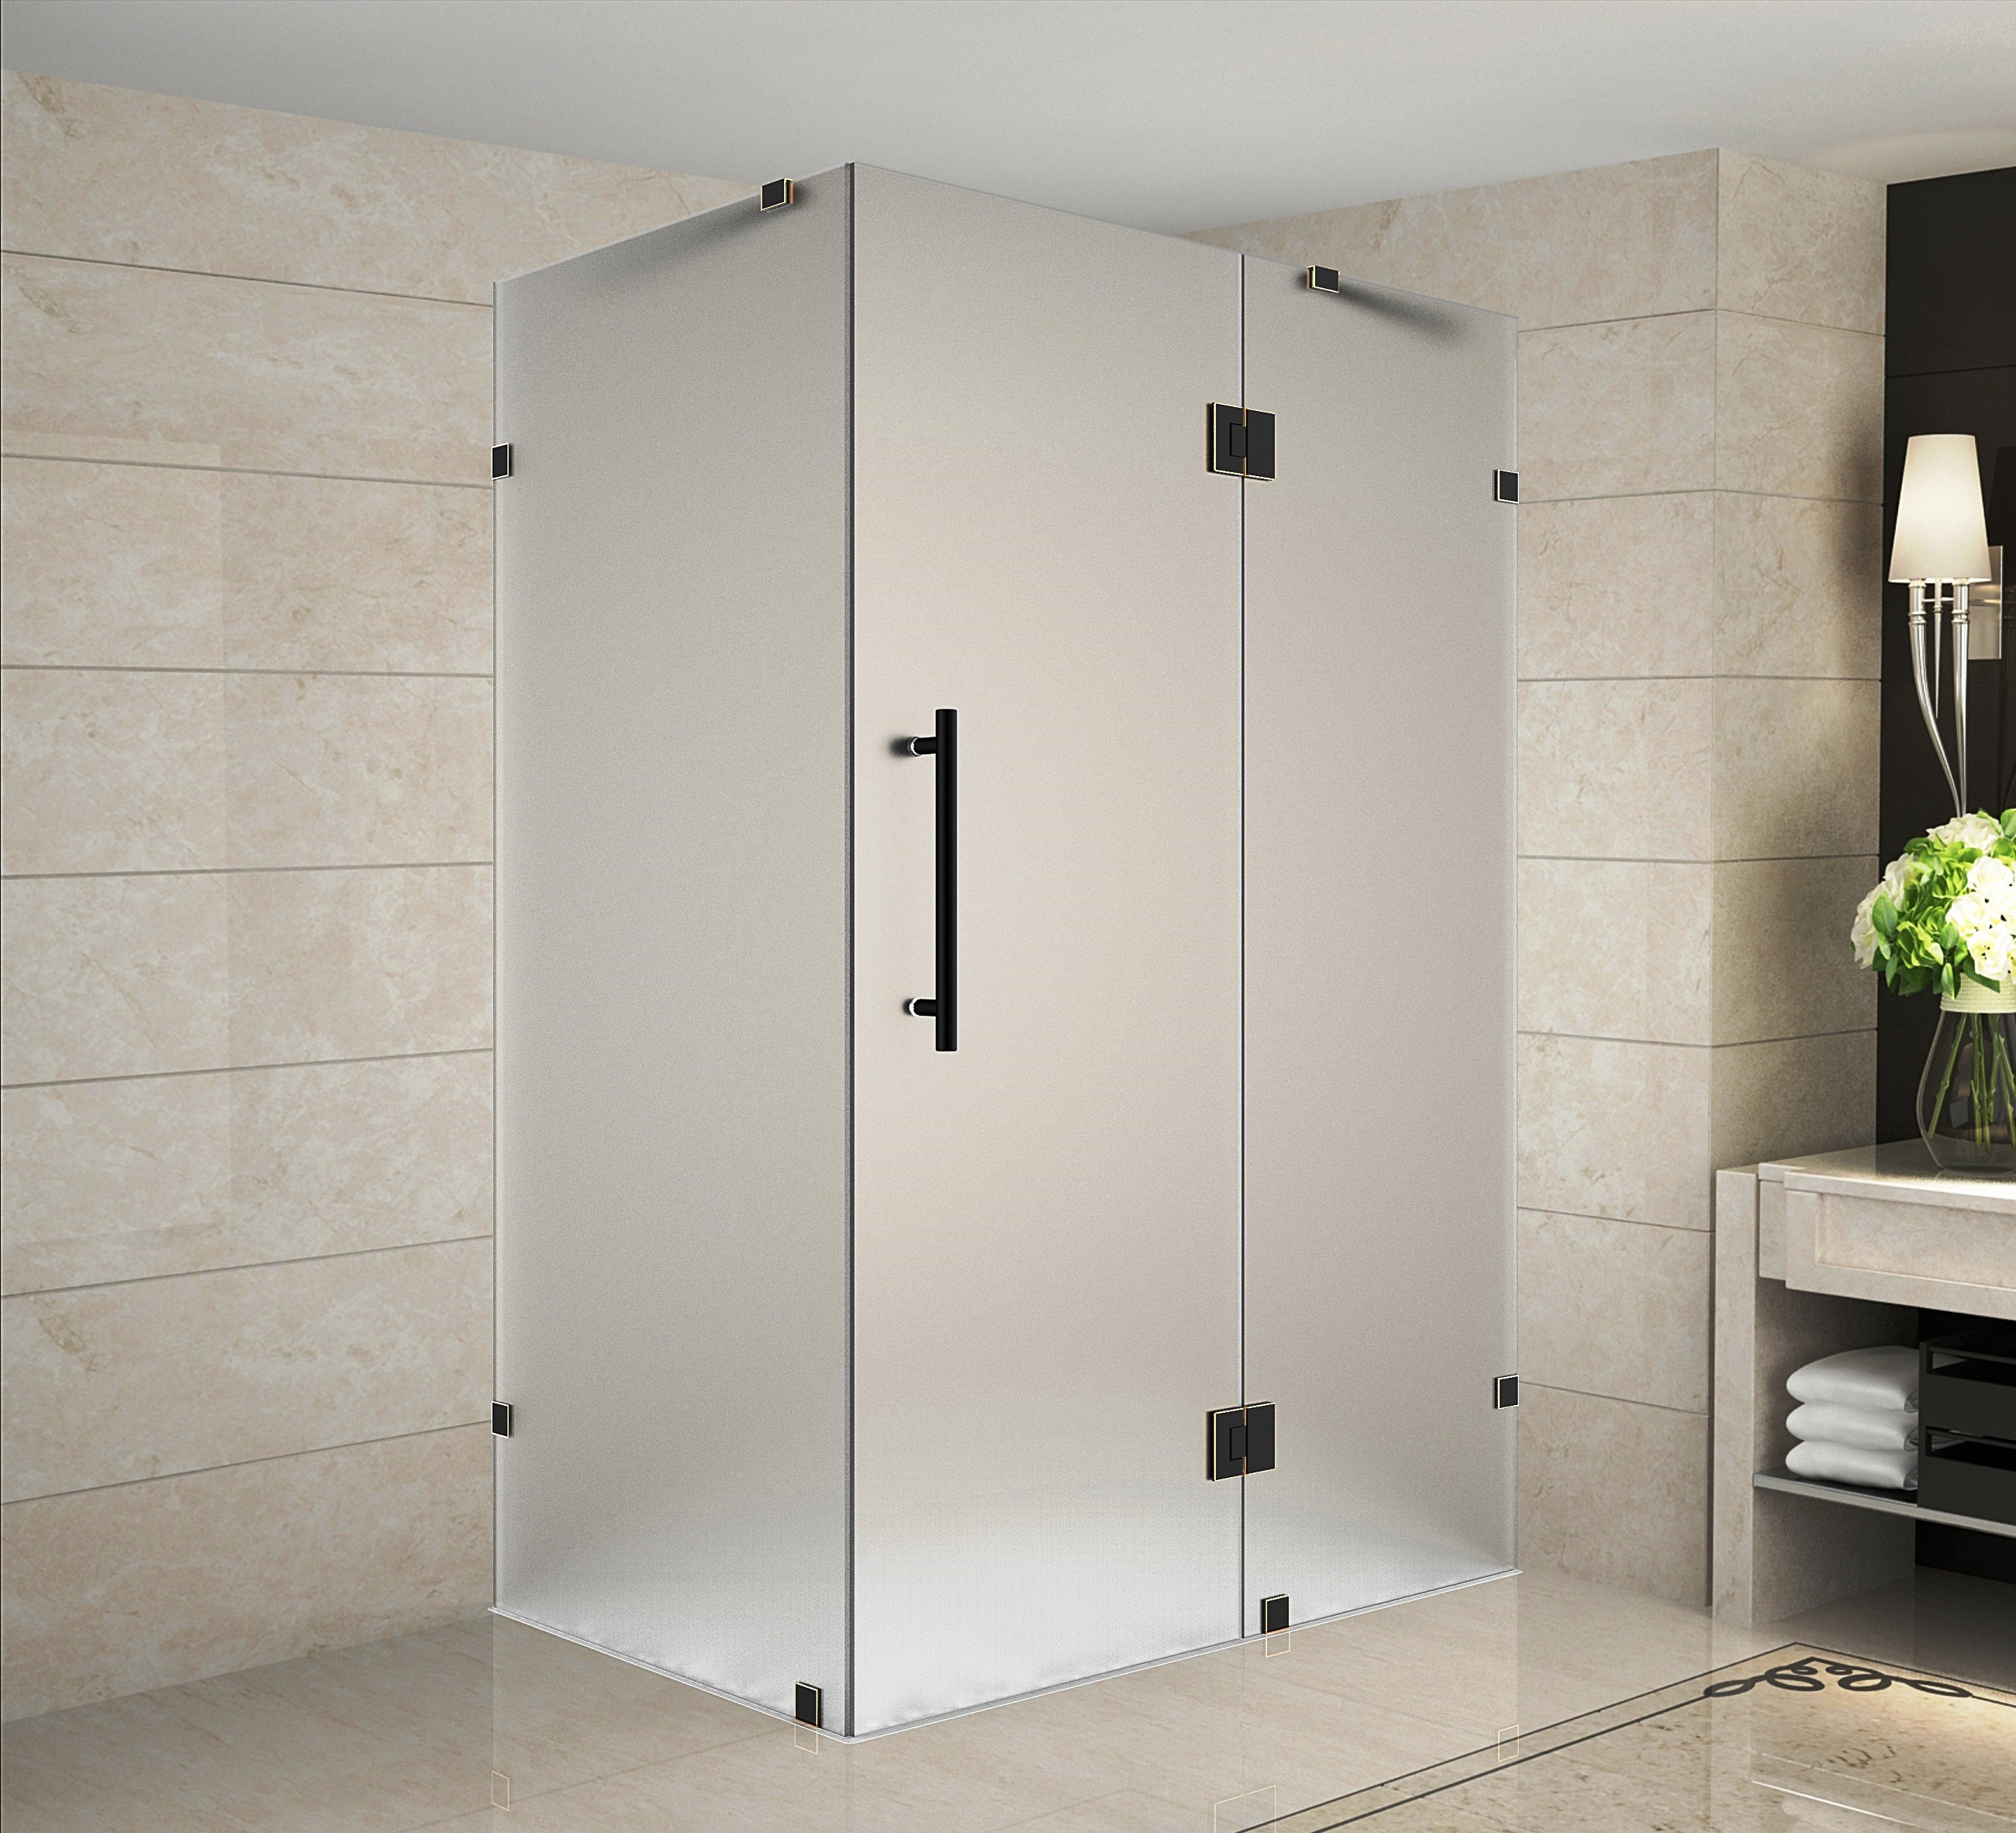 Aston SEN987F-ORB-3538-10 Completely Frameless Frosted Glass Shower Enclosure In Oil Rubbed Bronze